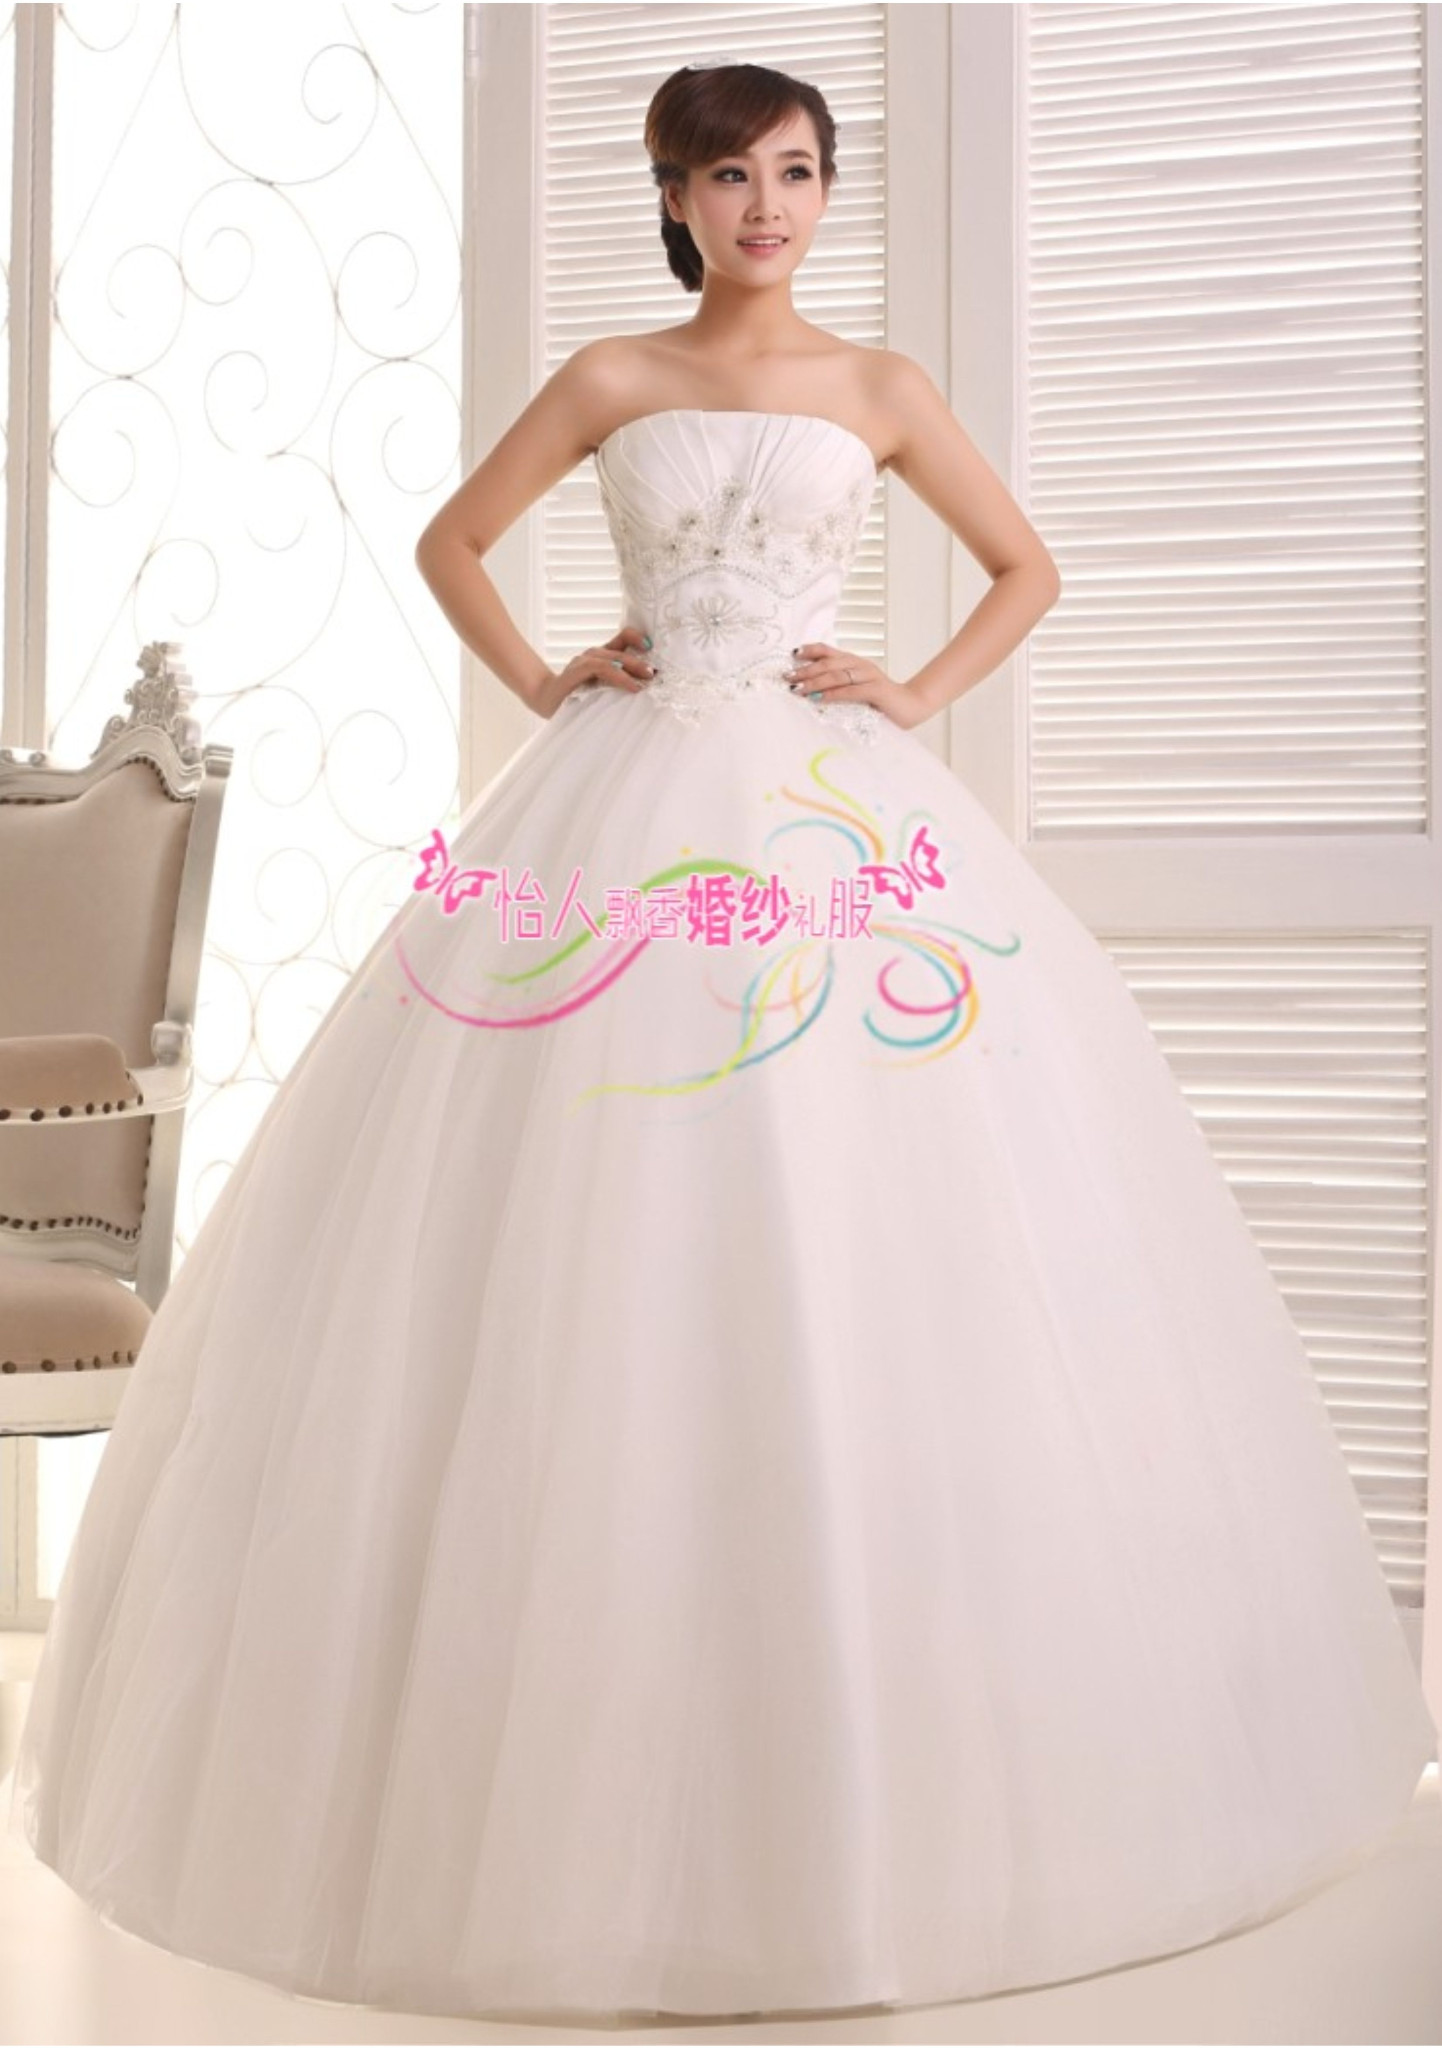 Jual wedding dress gaun pengantin payet dada korea 2015 for Wedding dress stores in arkansas